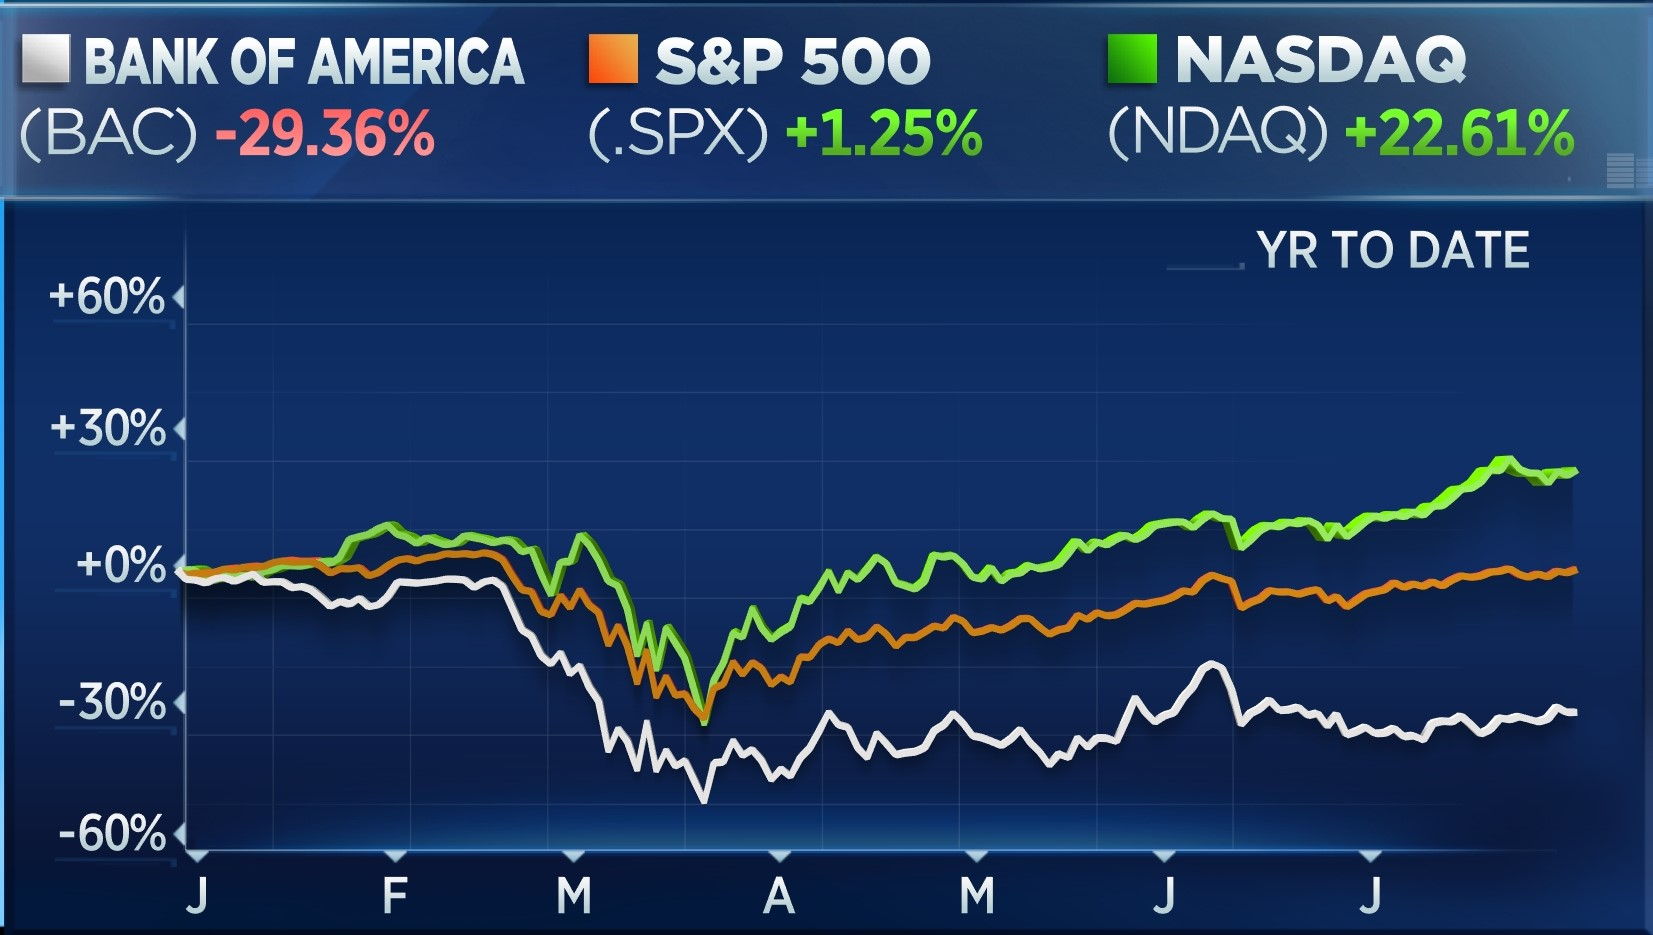 Year-to-date chart: Bank of America (BAC) Down 29.36%, S&P 500 (.SPX) Up 1.25%, Nasdaq (NDAQ) Up 22.61%